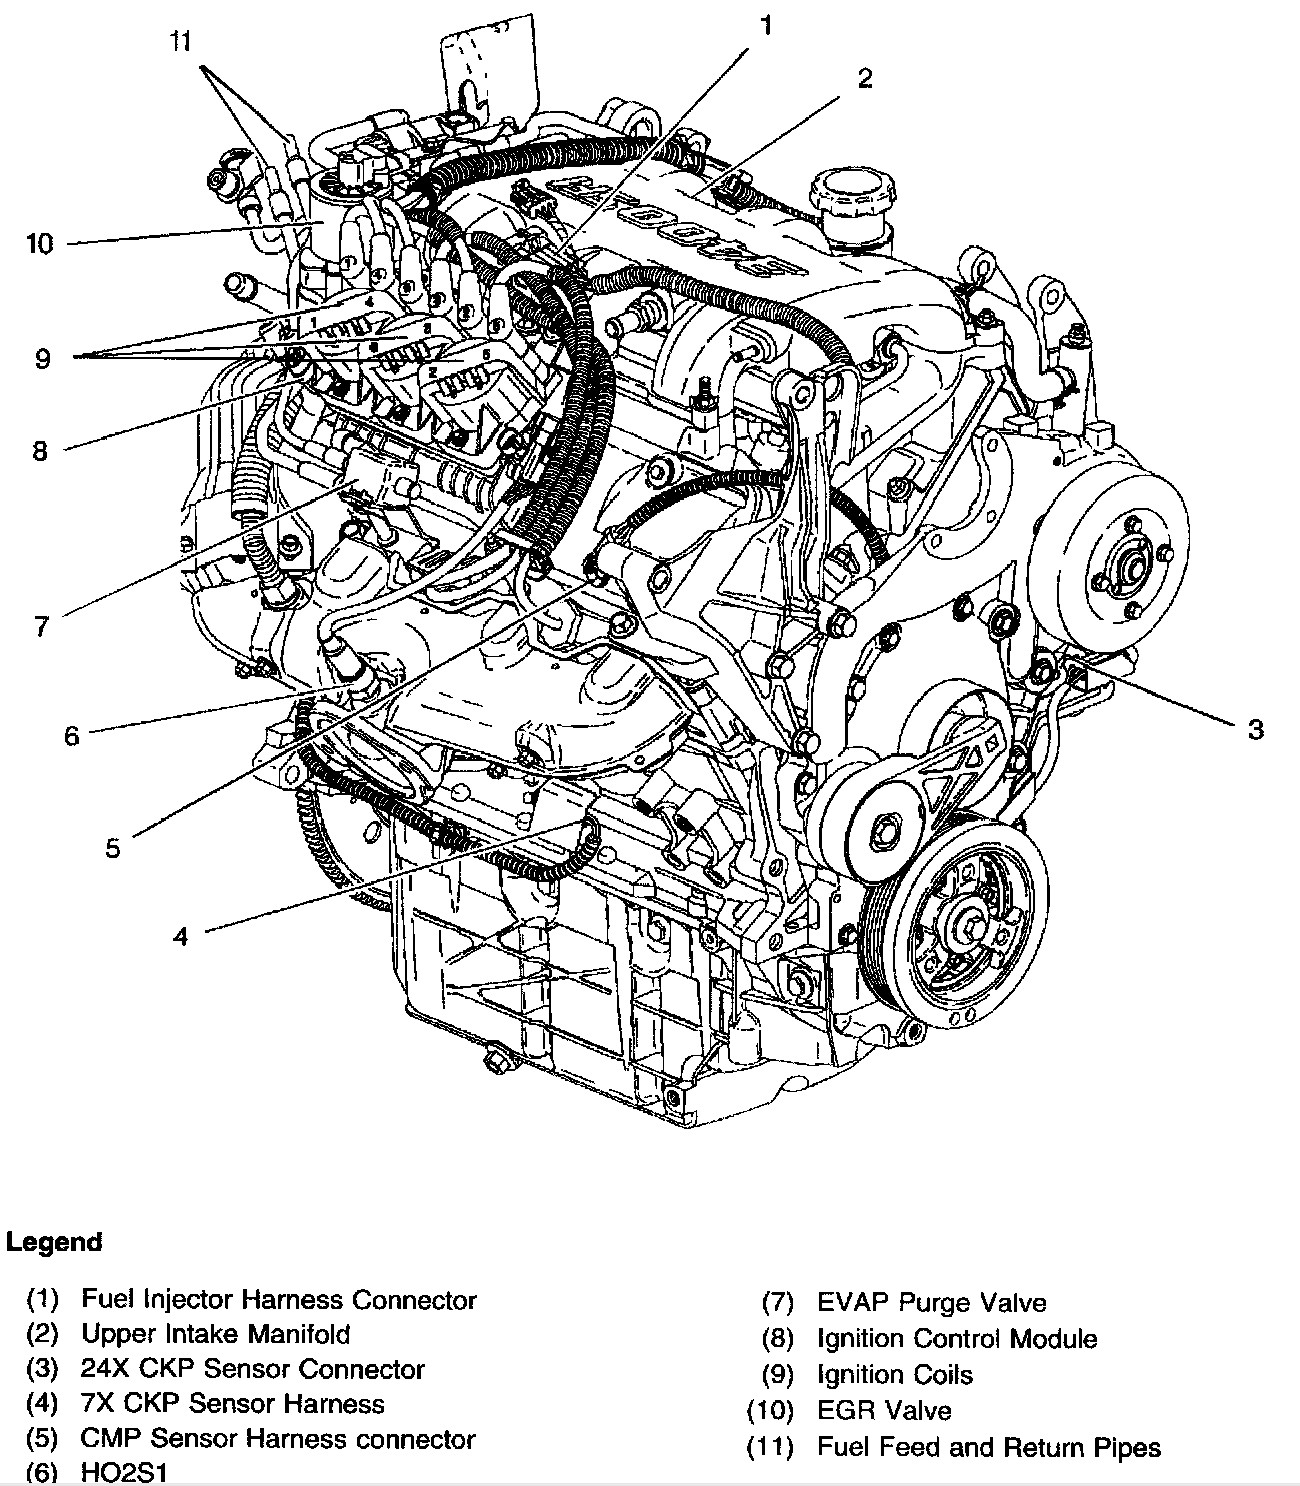 hight resolution of 2010 3 8 liter gm engine diagram wiring diagram insider 2010 3 8 liter gm engine